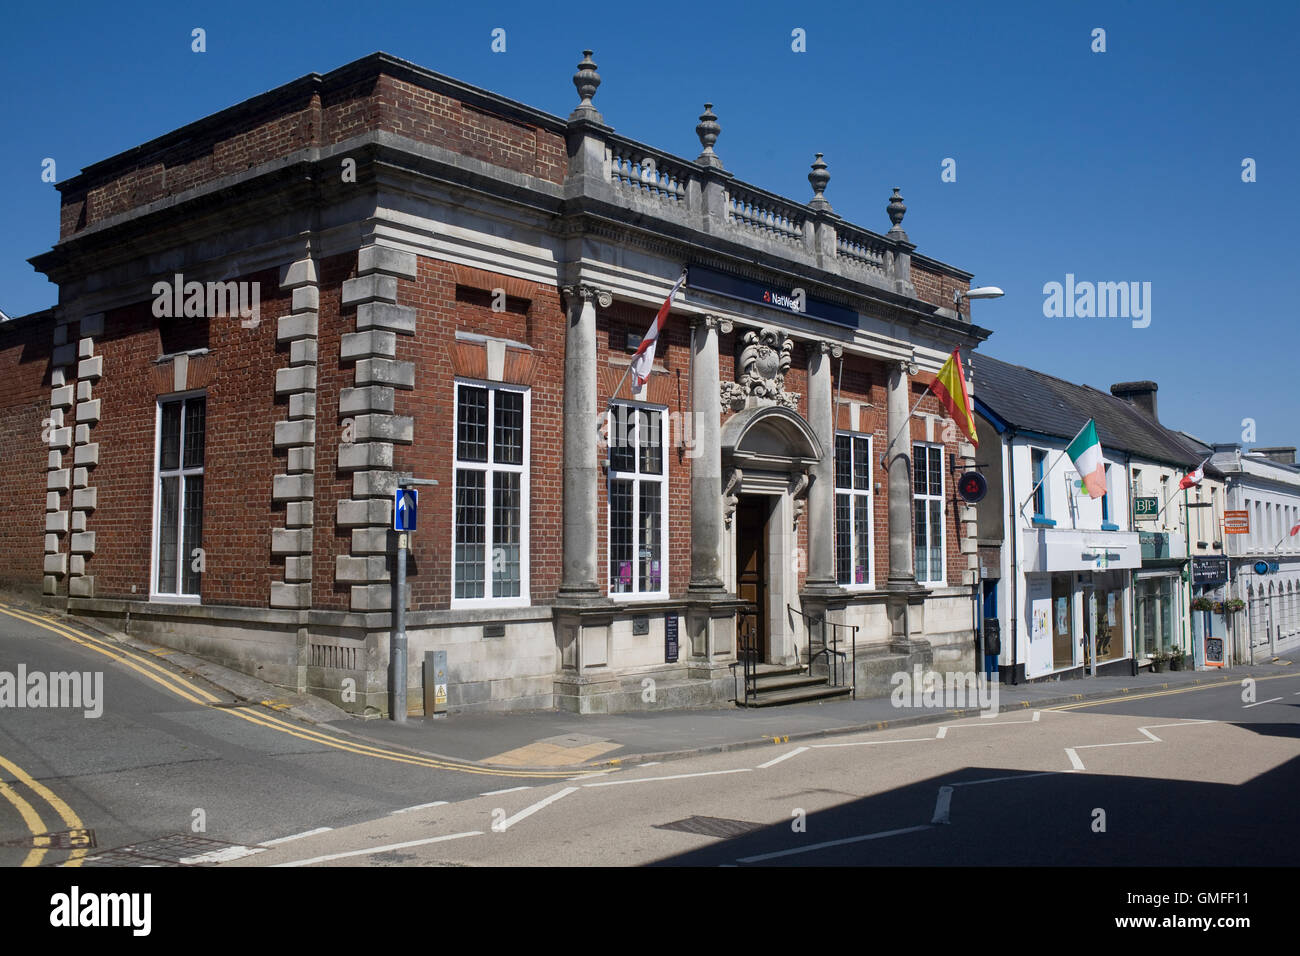 Rhosmaen street on hot summer day with Nat West bank - Stock Image